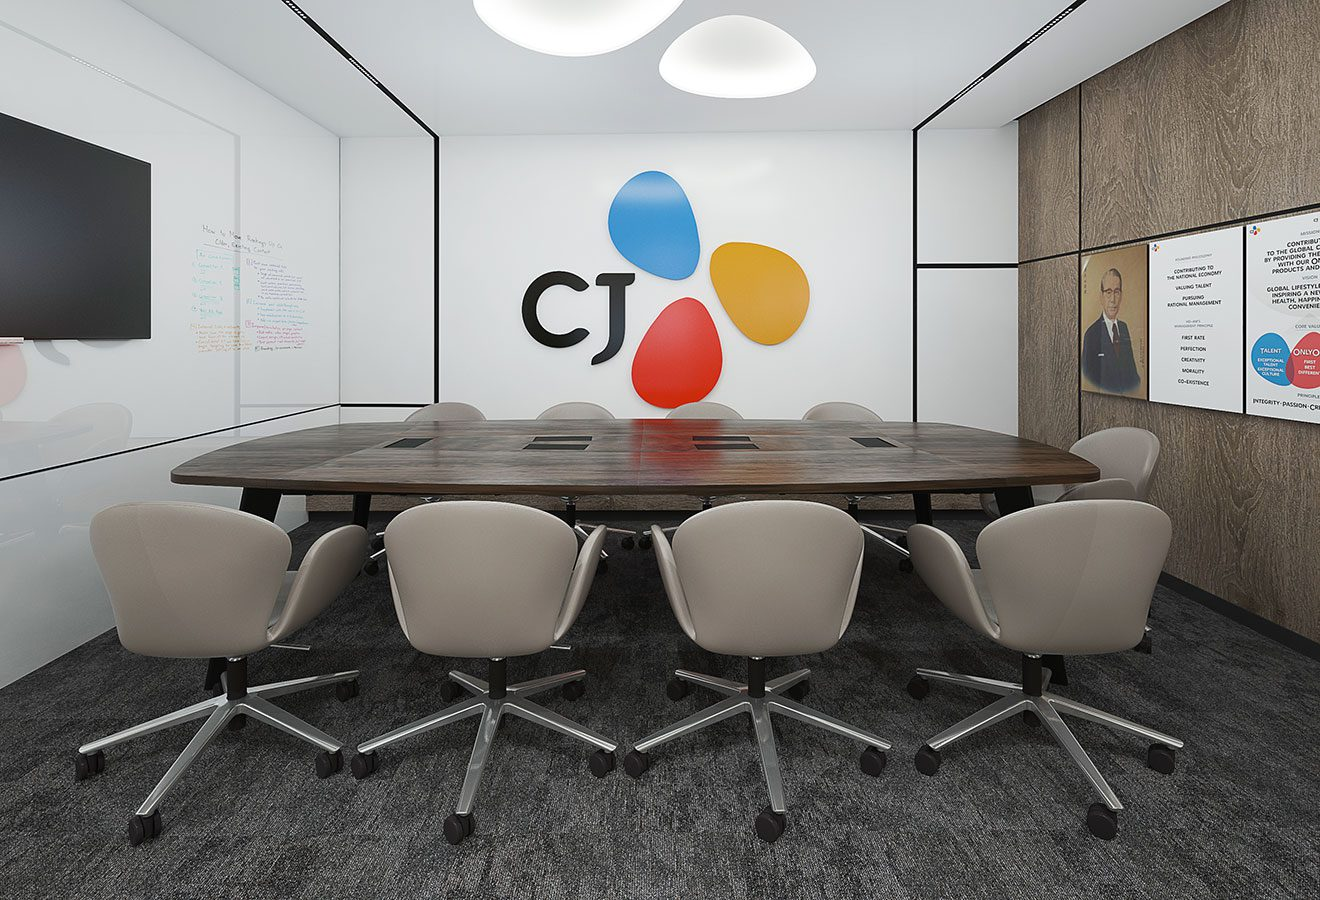 CJ CORPORATION OFIS